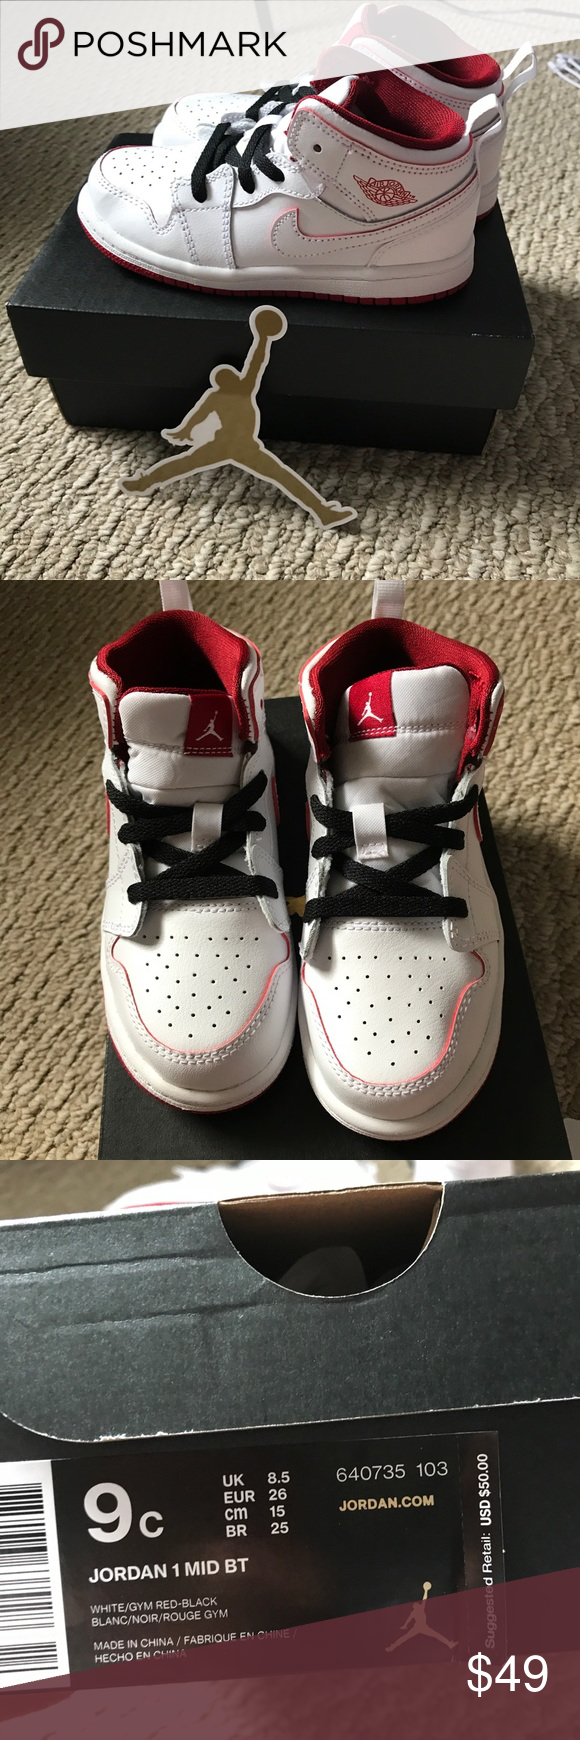 watch 6fd0f c1f10 NWT Jordan Mid BT Toddler Size 9c Brand new with the tag ...